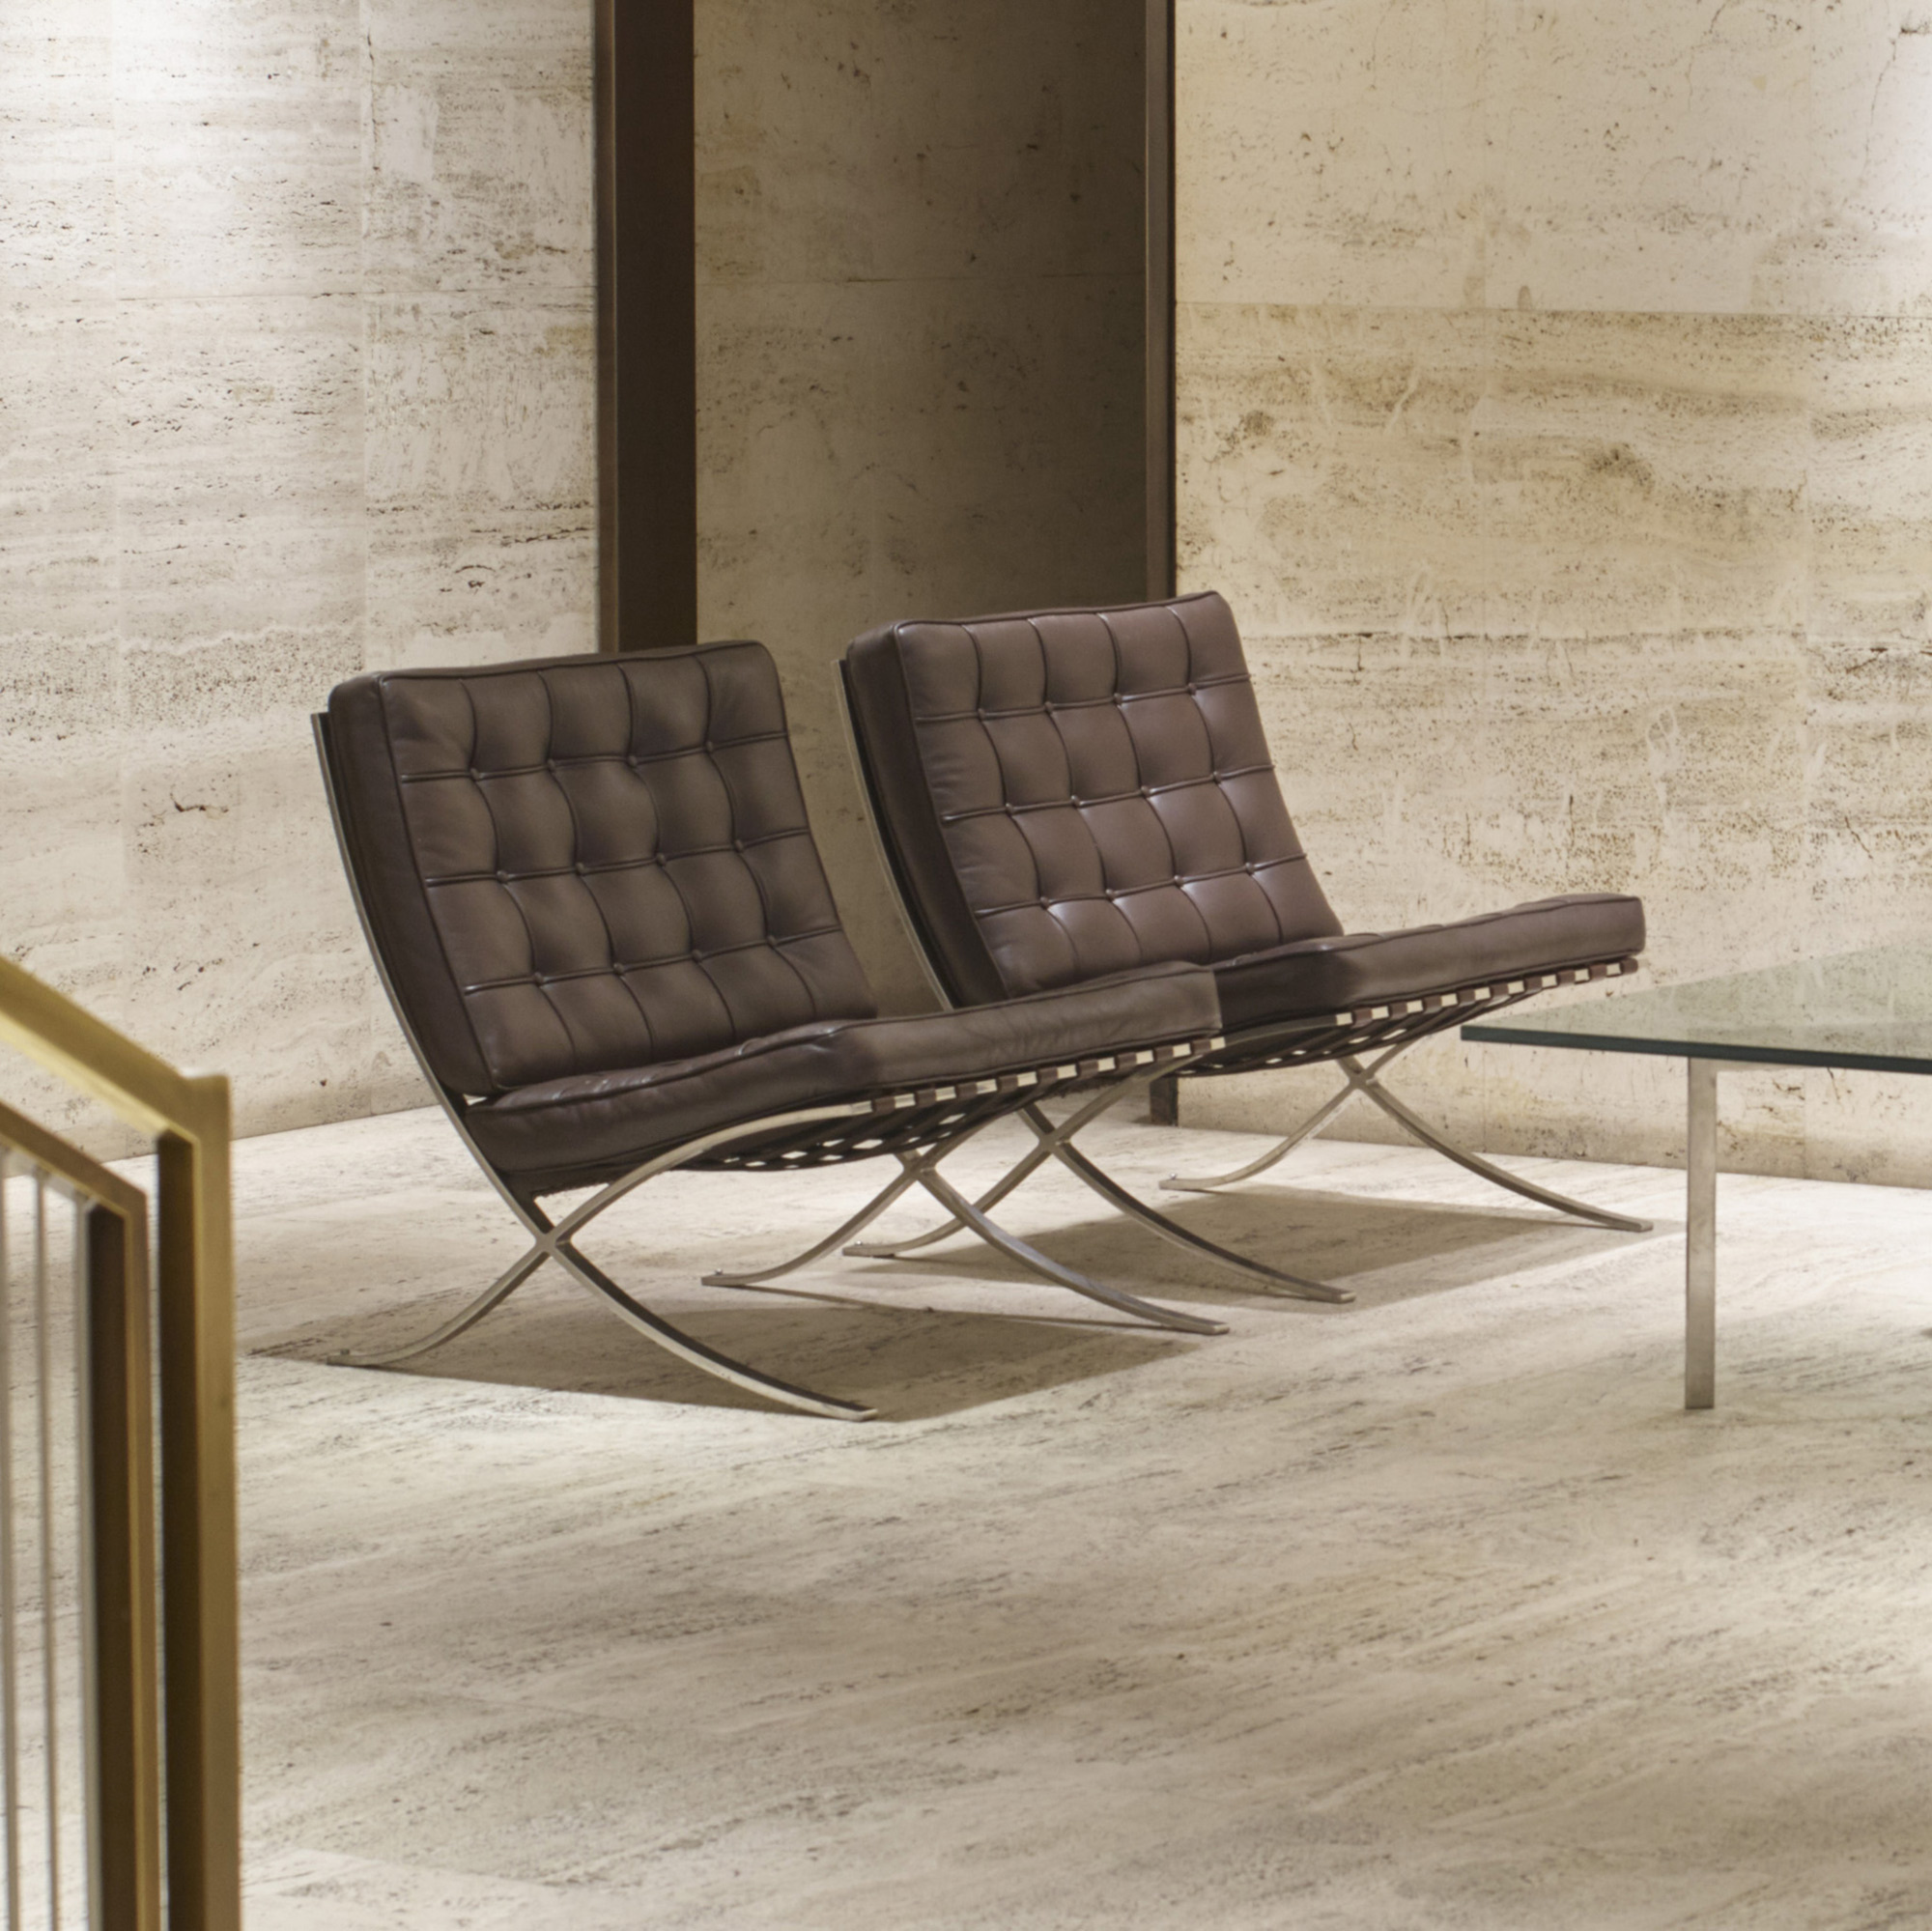 101: Ludwig Mies van der Rohe / Barcelona chairs from the entrance lobby of The Four Seasons, pair (1 of 1)